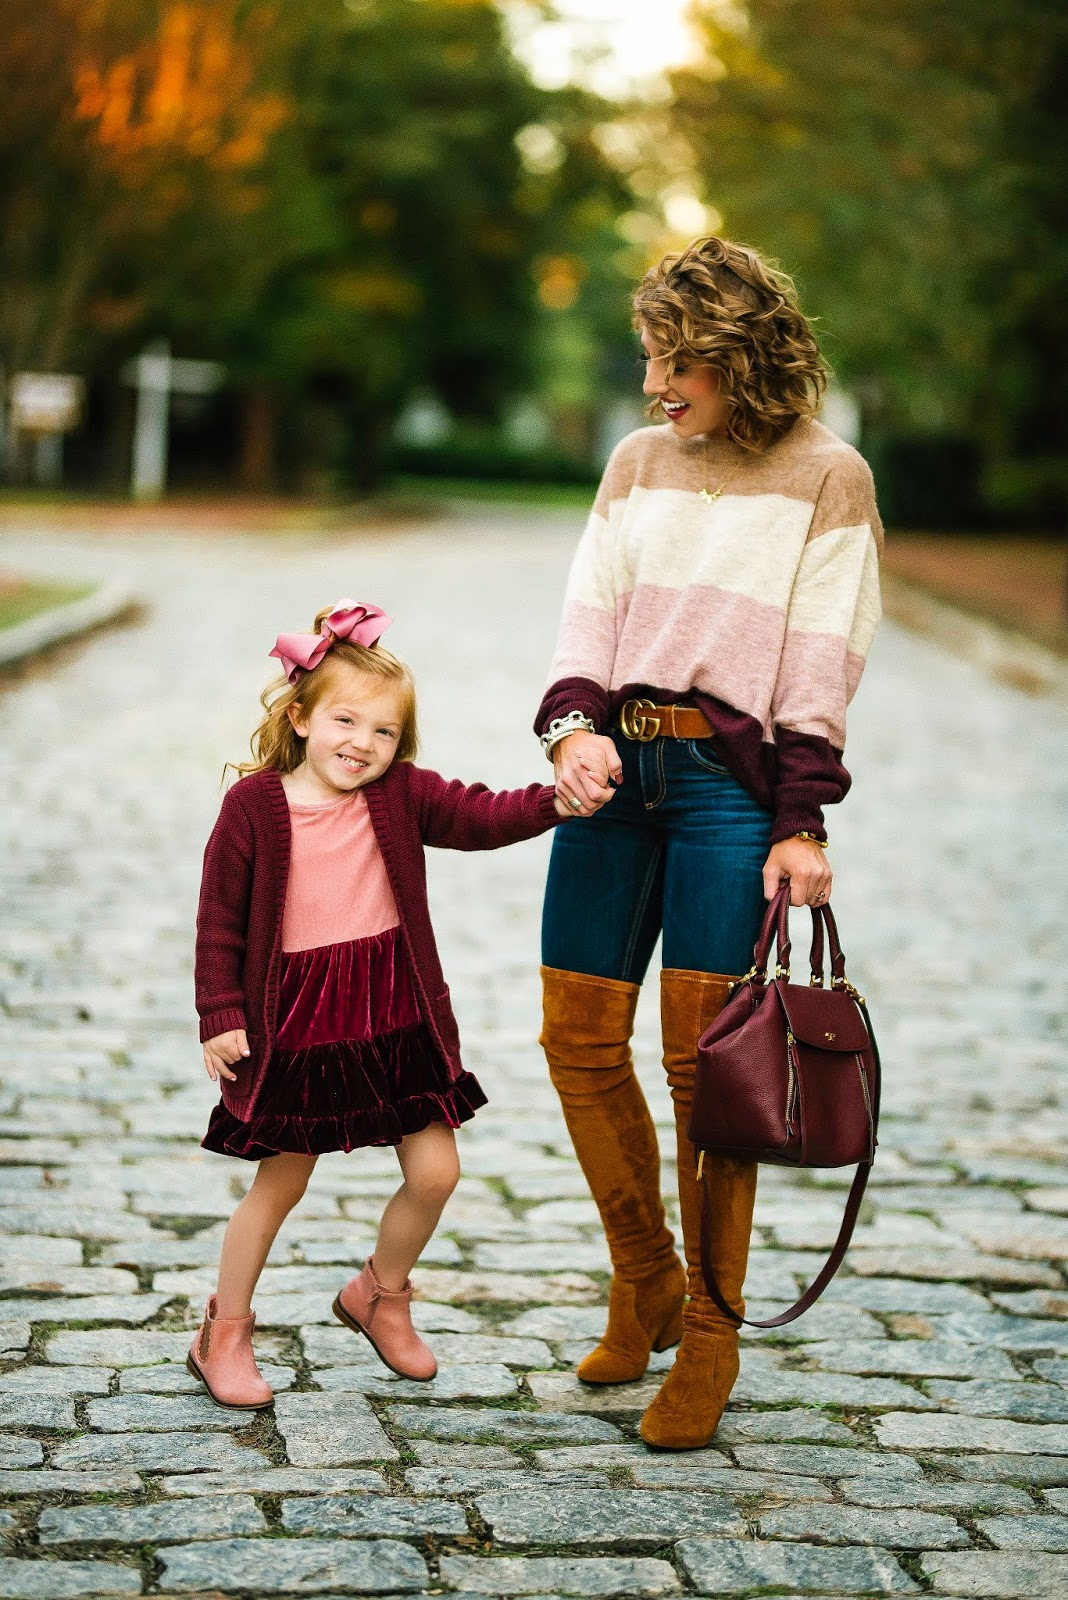 Pink & Burgundy Color Block Looks for Moms and Kids - Something Delightful Blog